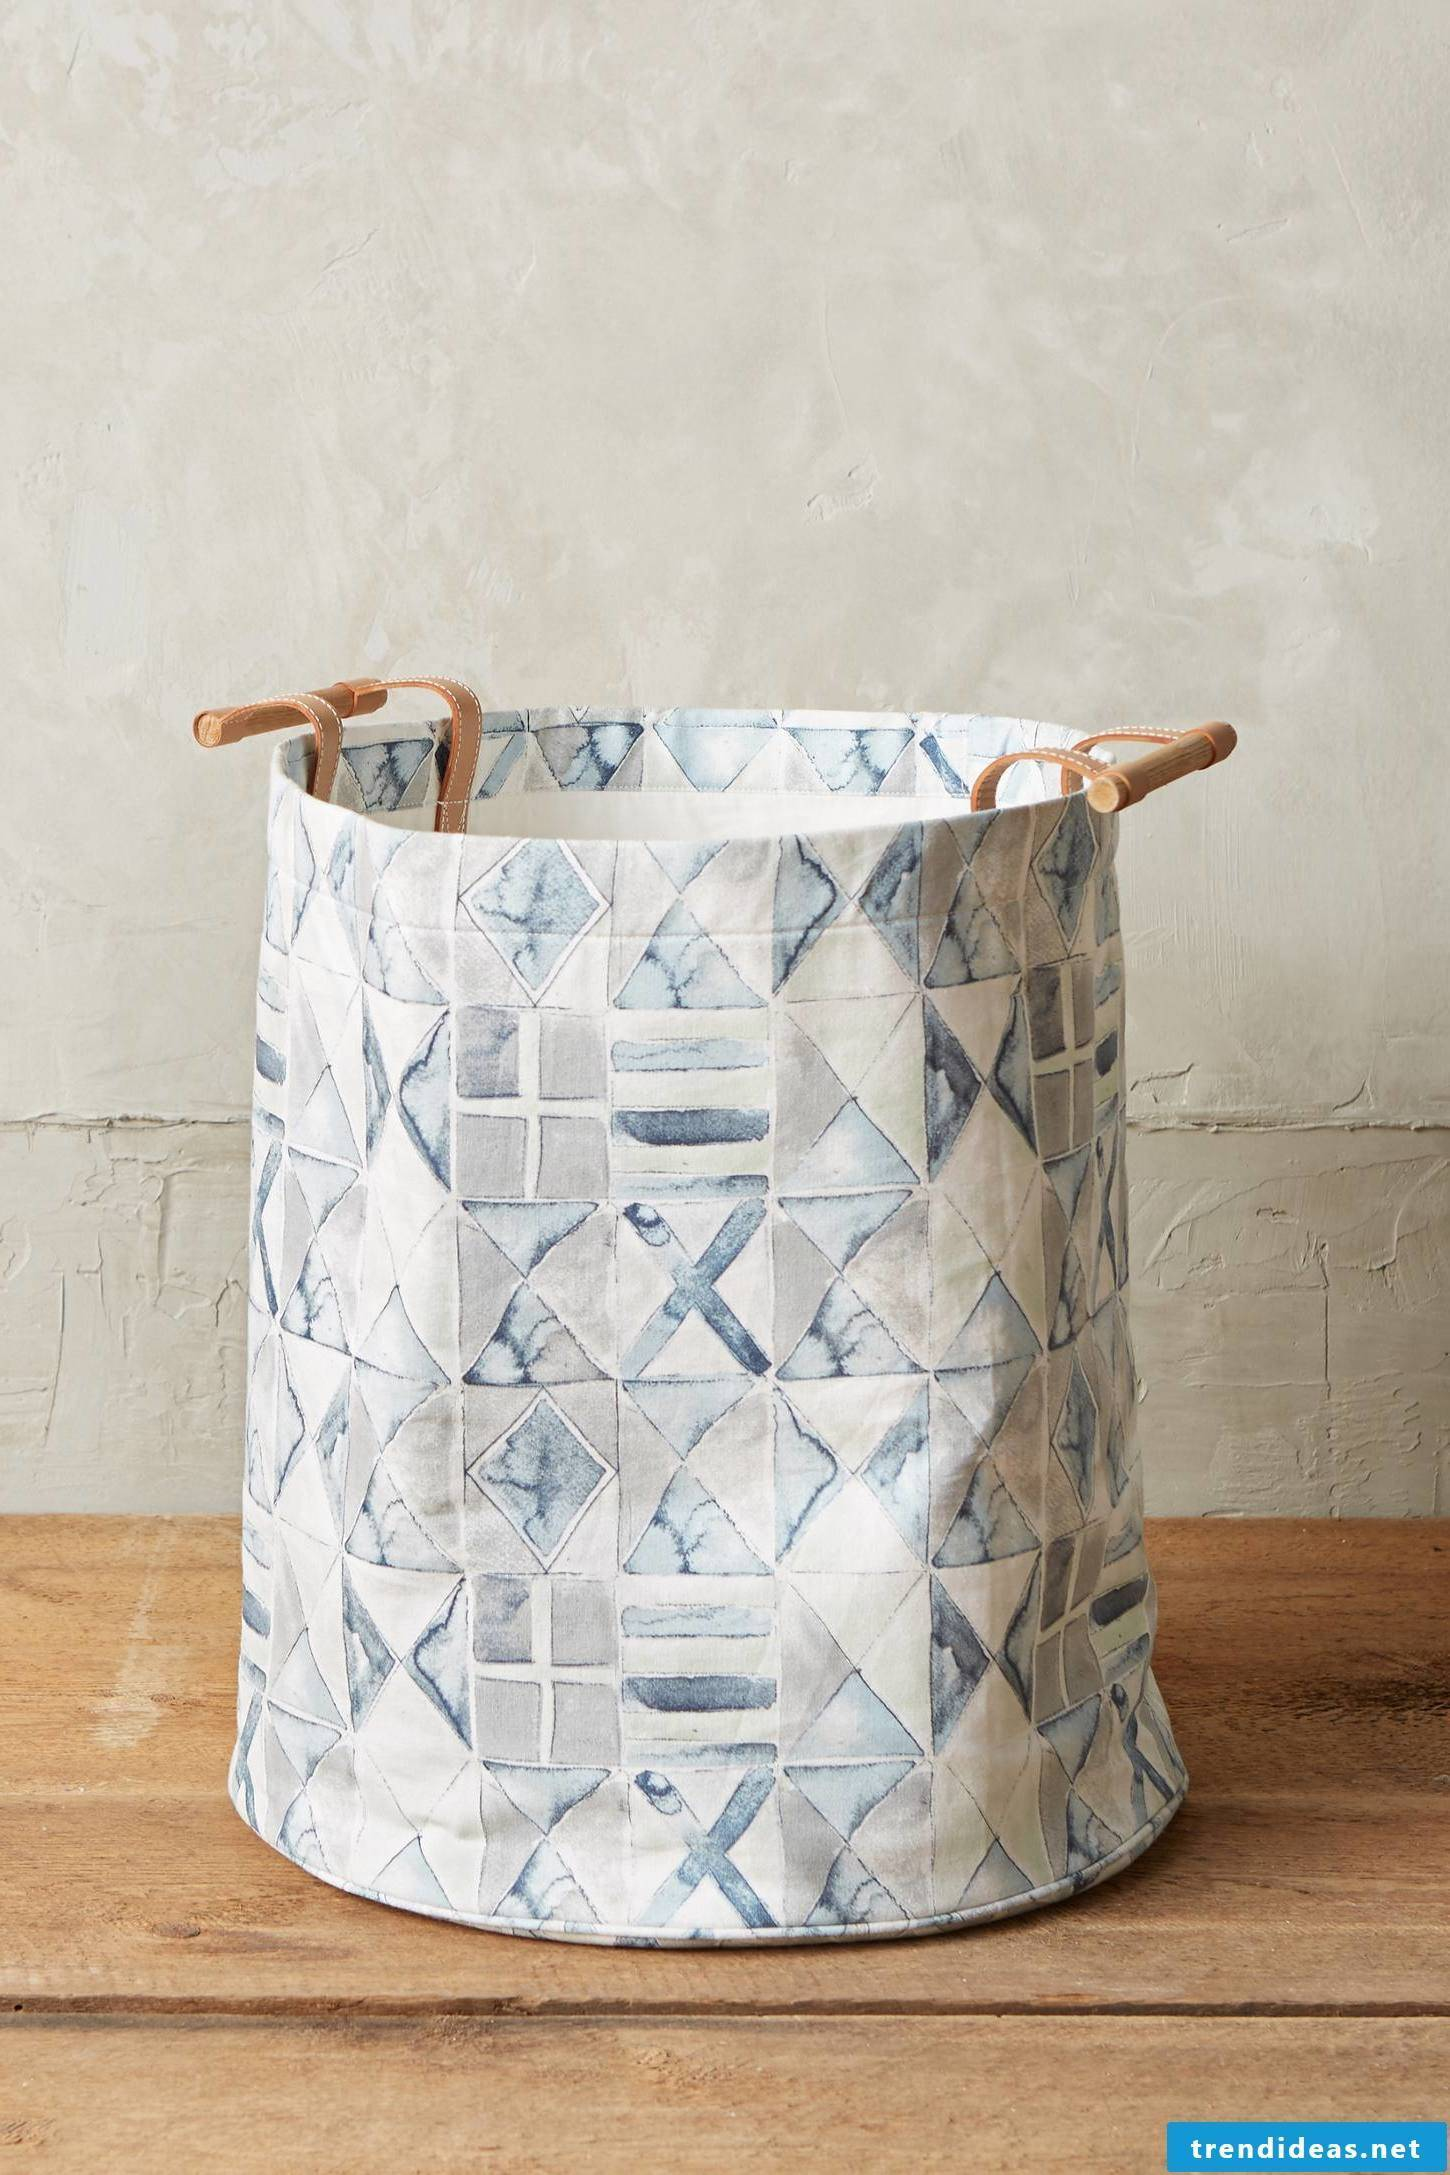 Unconventional thinking: Make your own laundry basket without sewing!